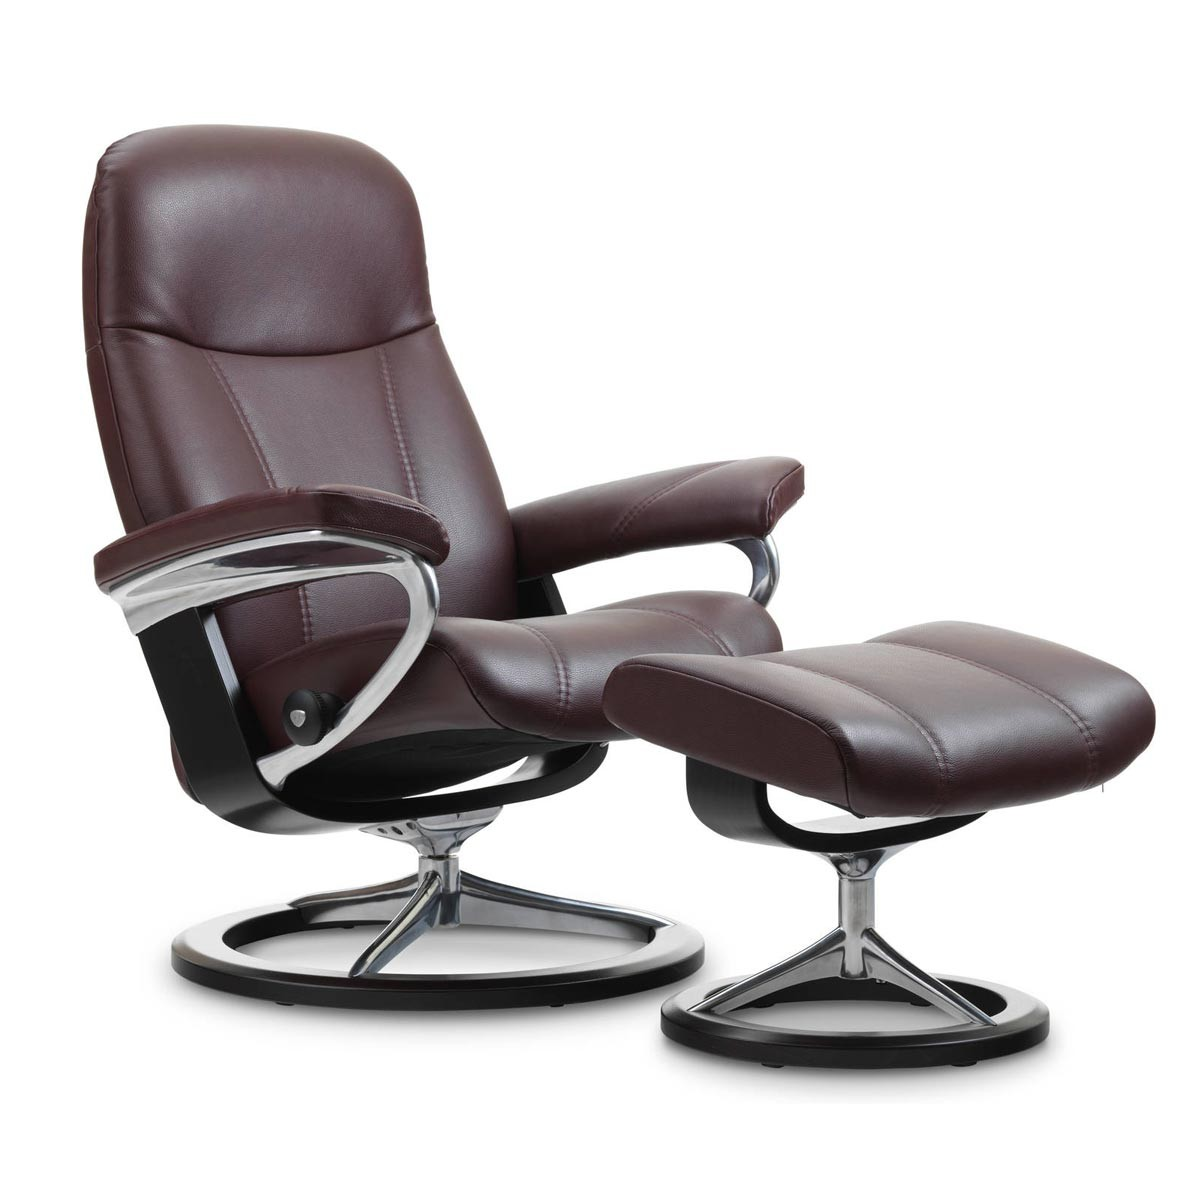 Stresless Stressless Consul Signature Recliner & Ottoman From $1,695